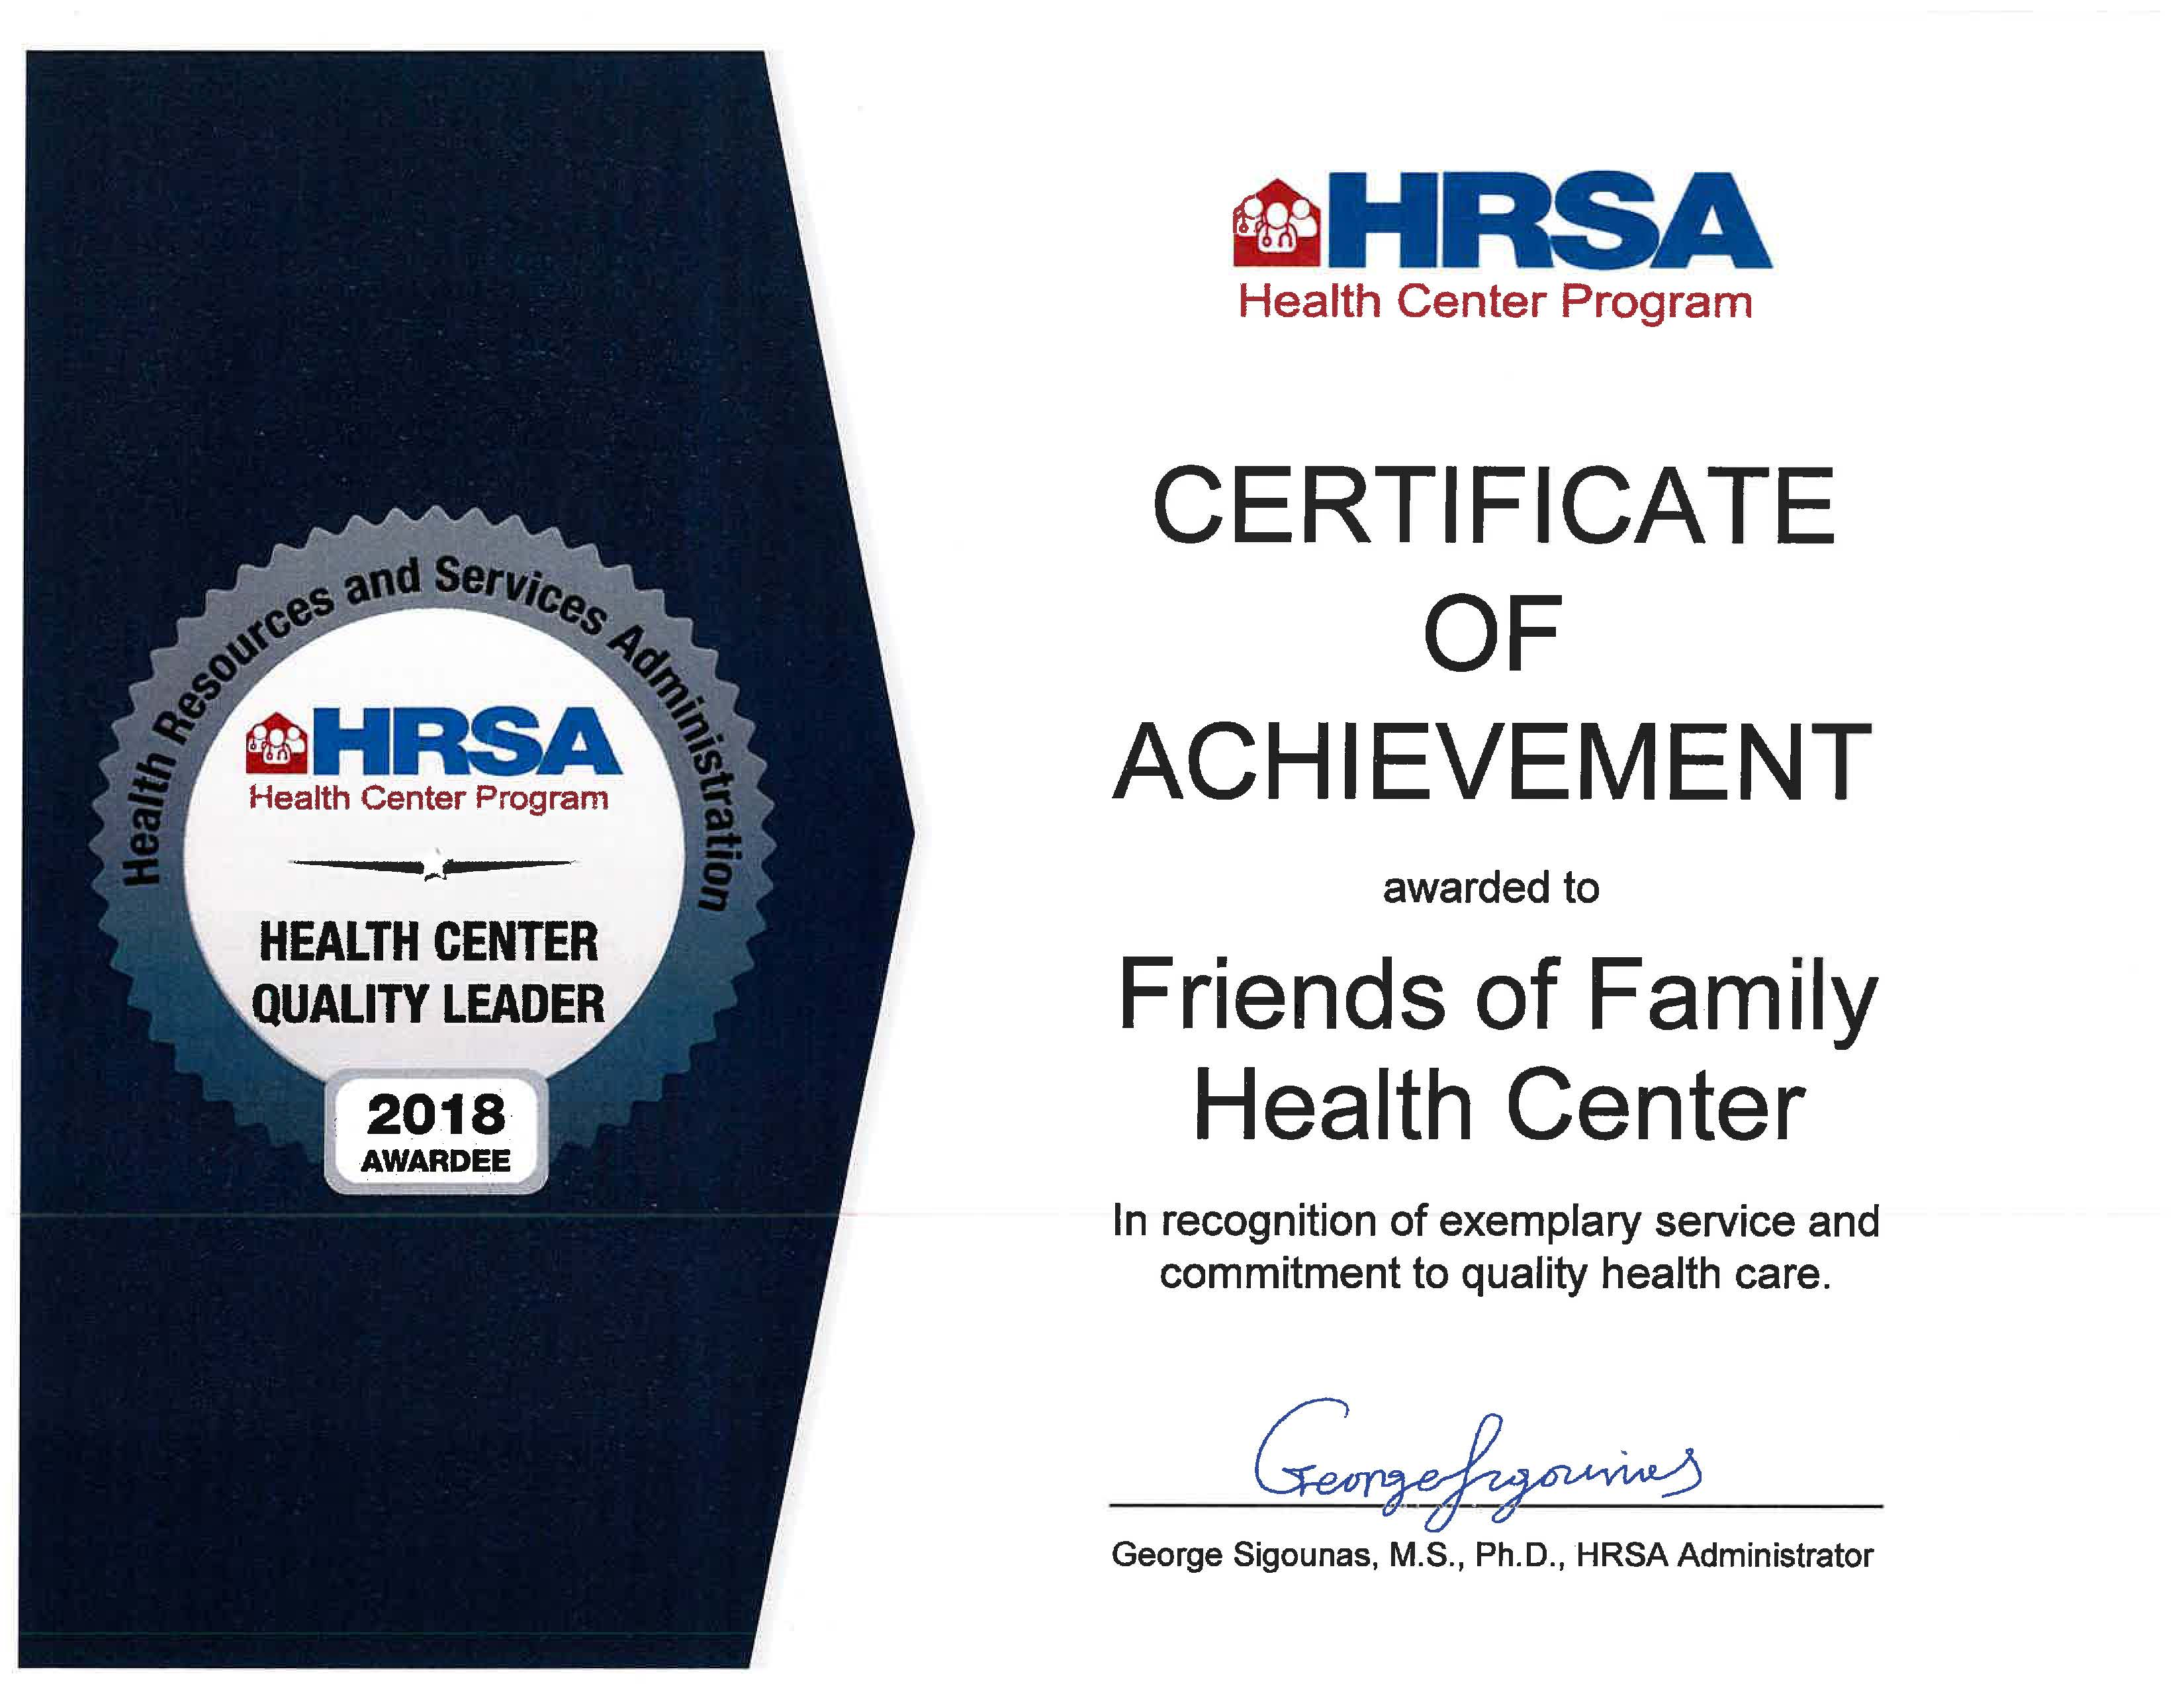 HRSA_Certificate_of_Achievement.jpg